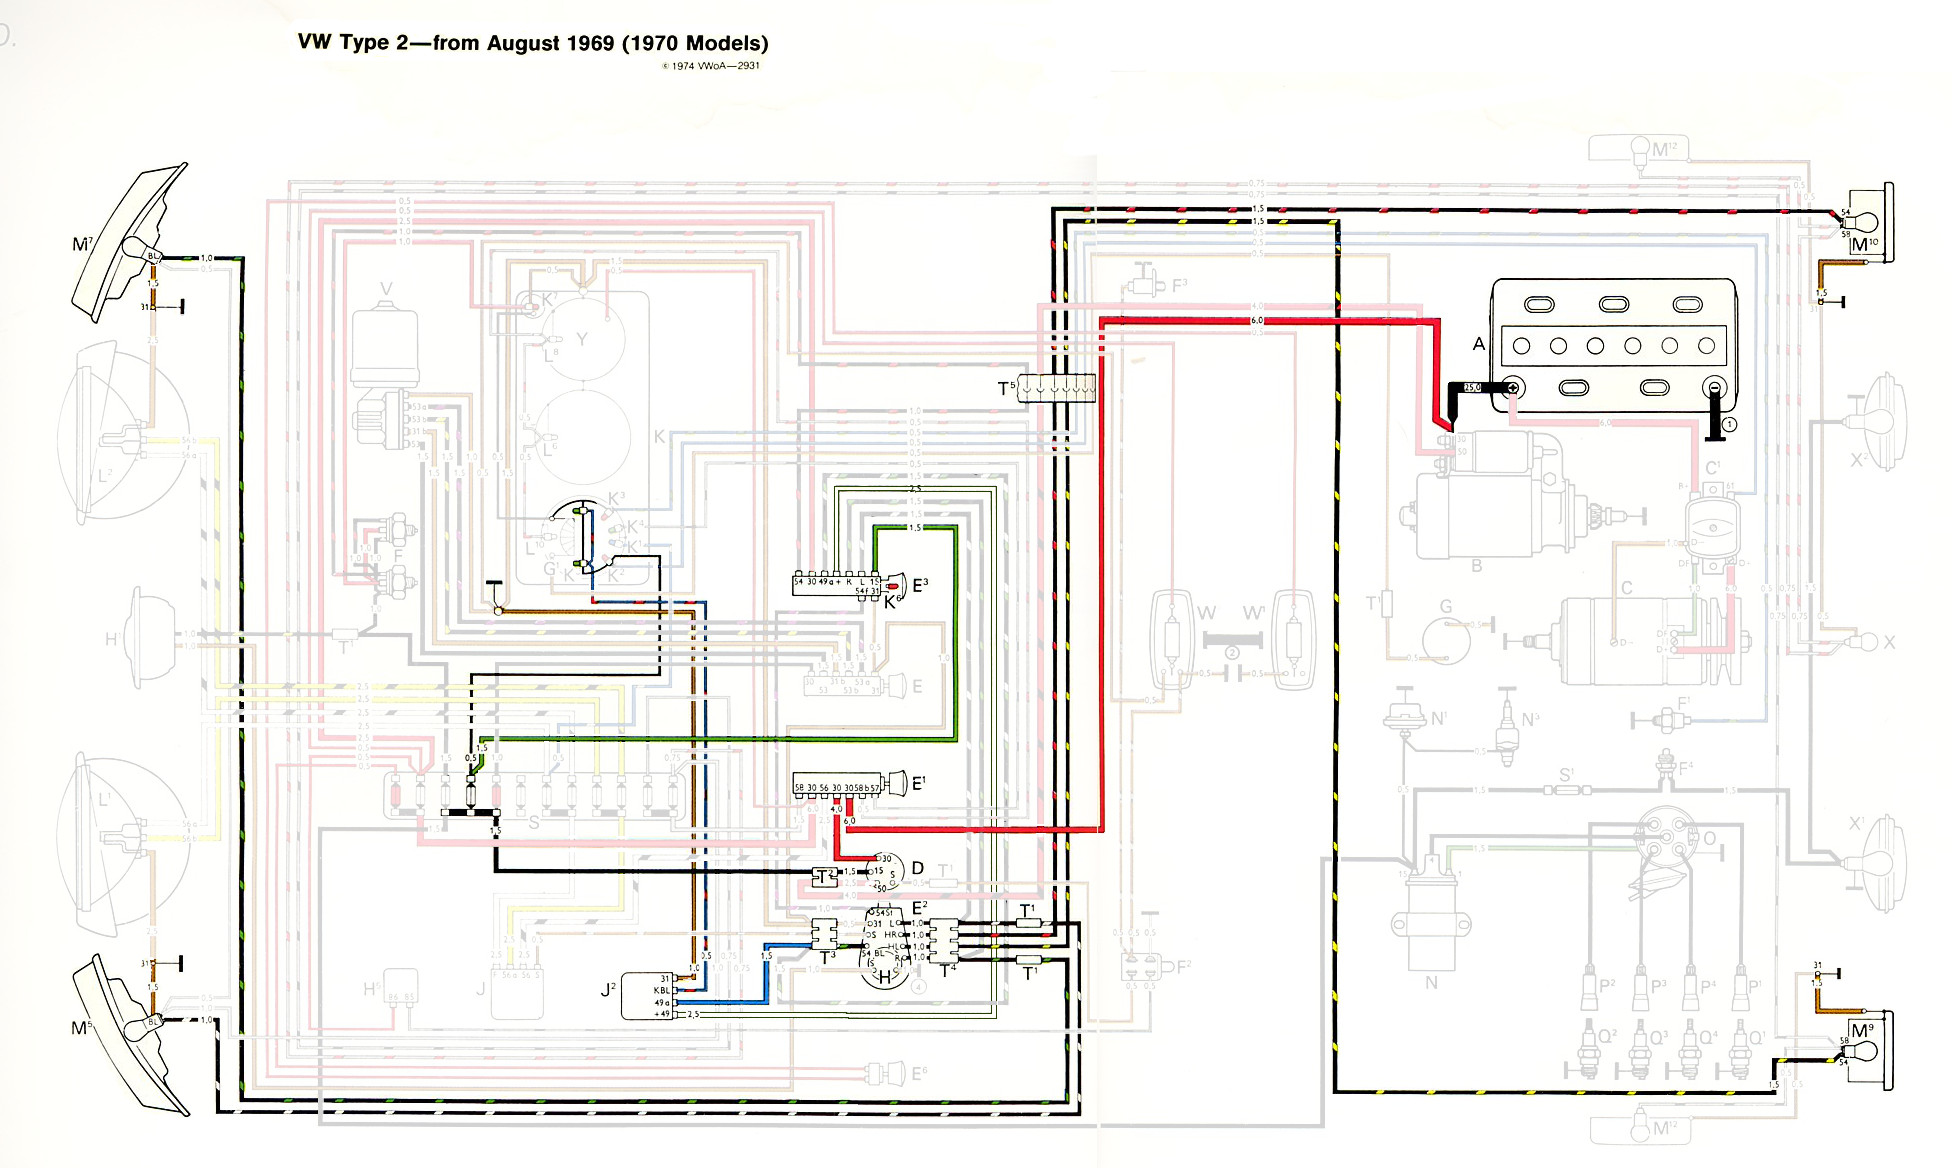 Type 2 Wiring Diagrams Charging Circuit Diagram For The 1951 52 Cadillac All Models